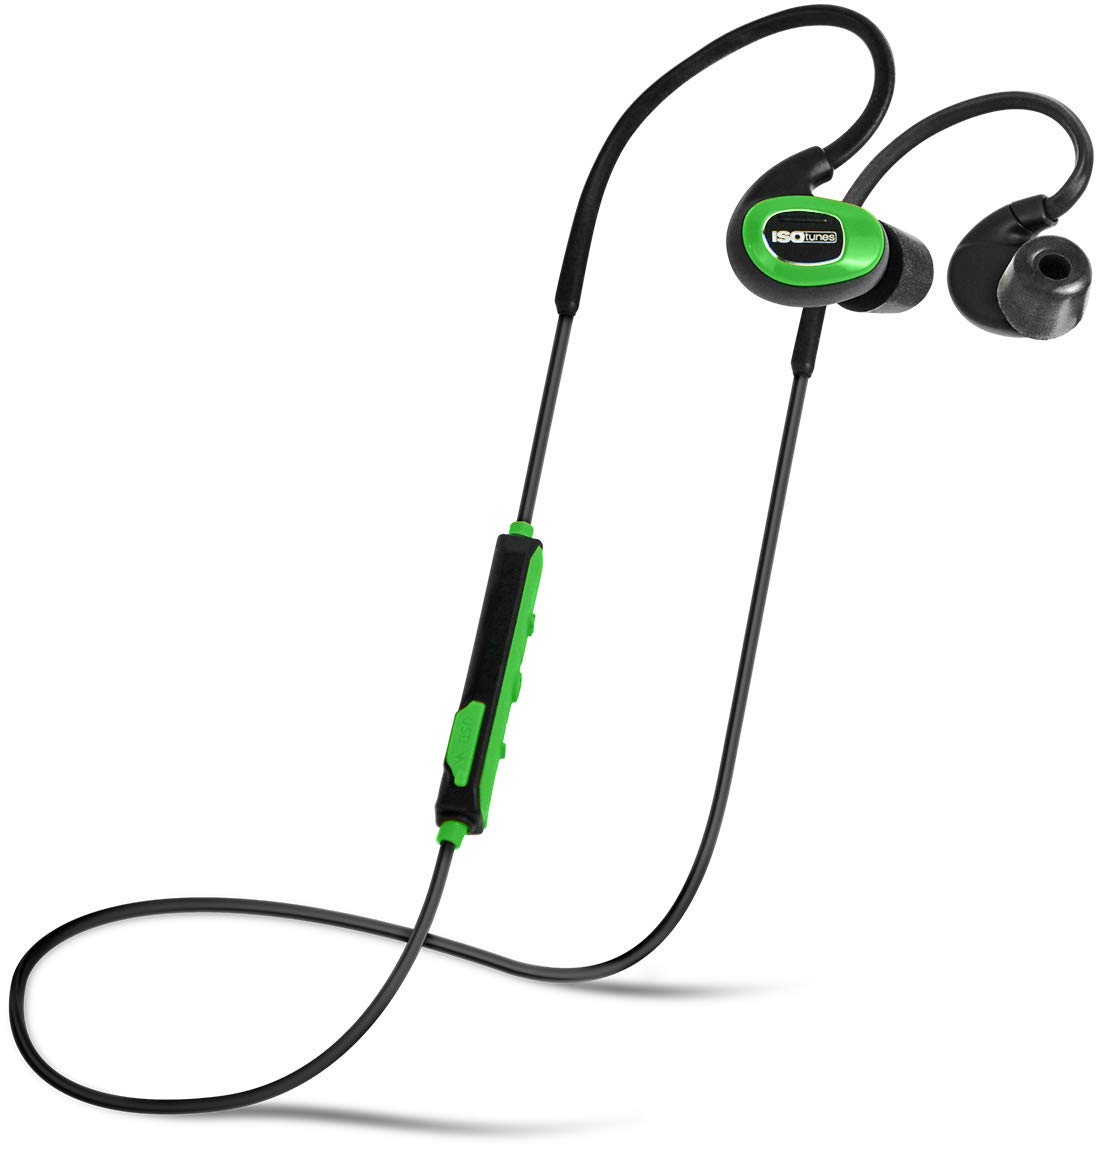 ISOtunes PRO Industrial (No Microphone), Bluetooth Earplug Headphones, 27 dB Noise Reduction Rating, 10 Hour Battery, 79 dB Volume Limit, OSHA Compliant Bluetooth Hearing Protector (Safety Green)